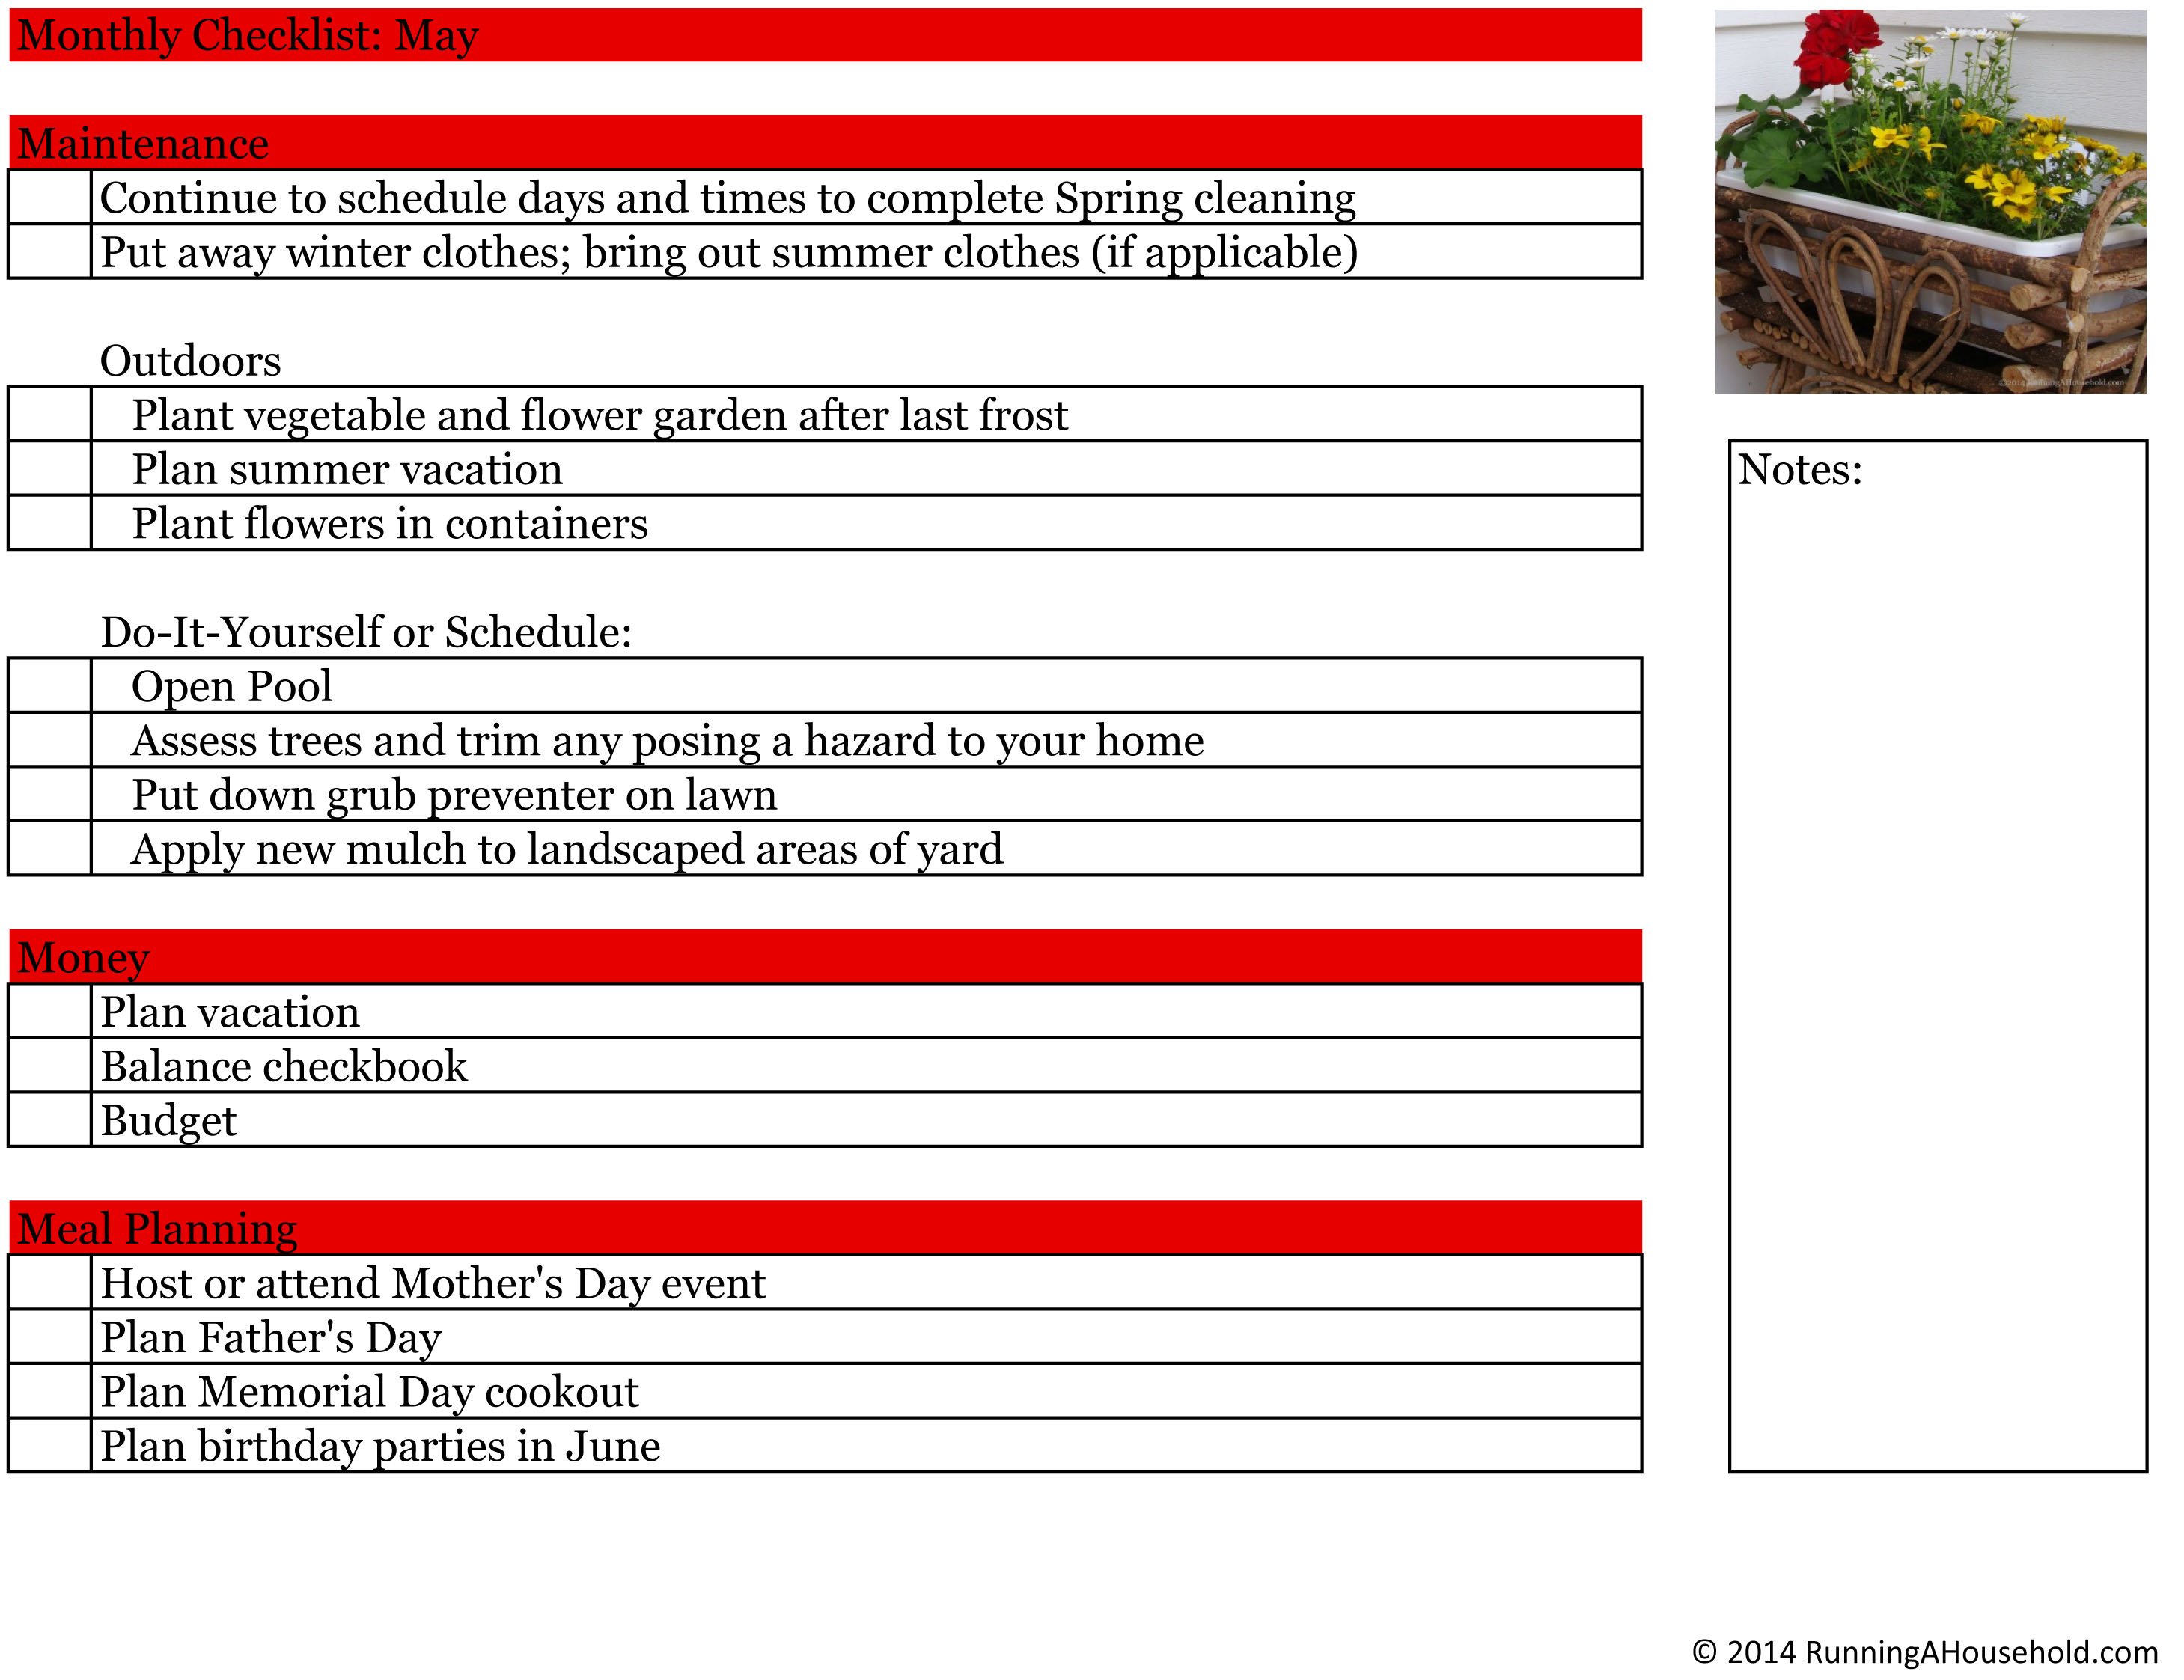 Printable Household Checklist For May